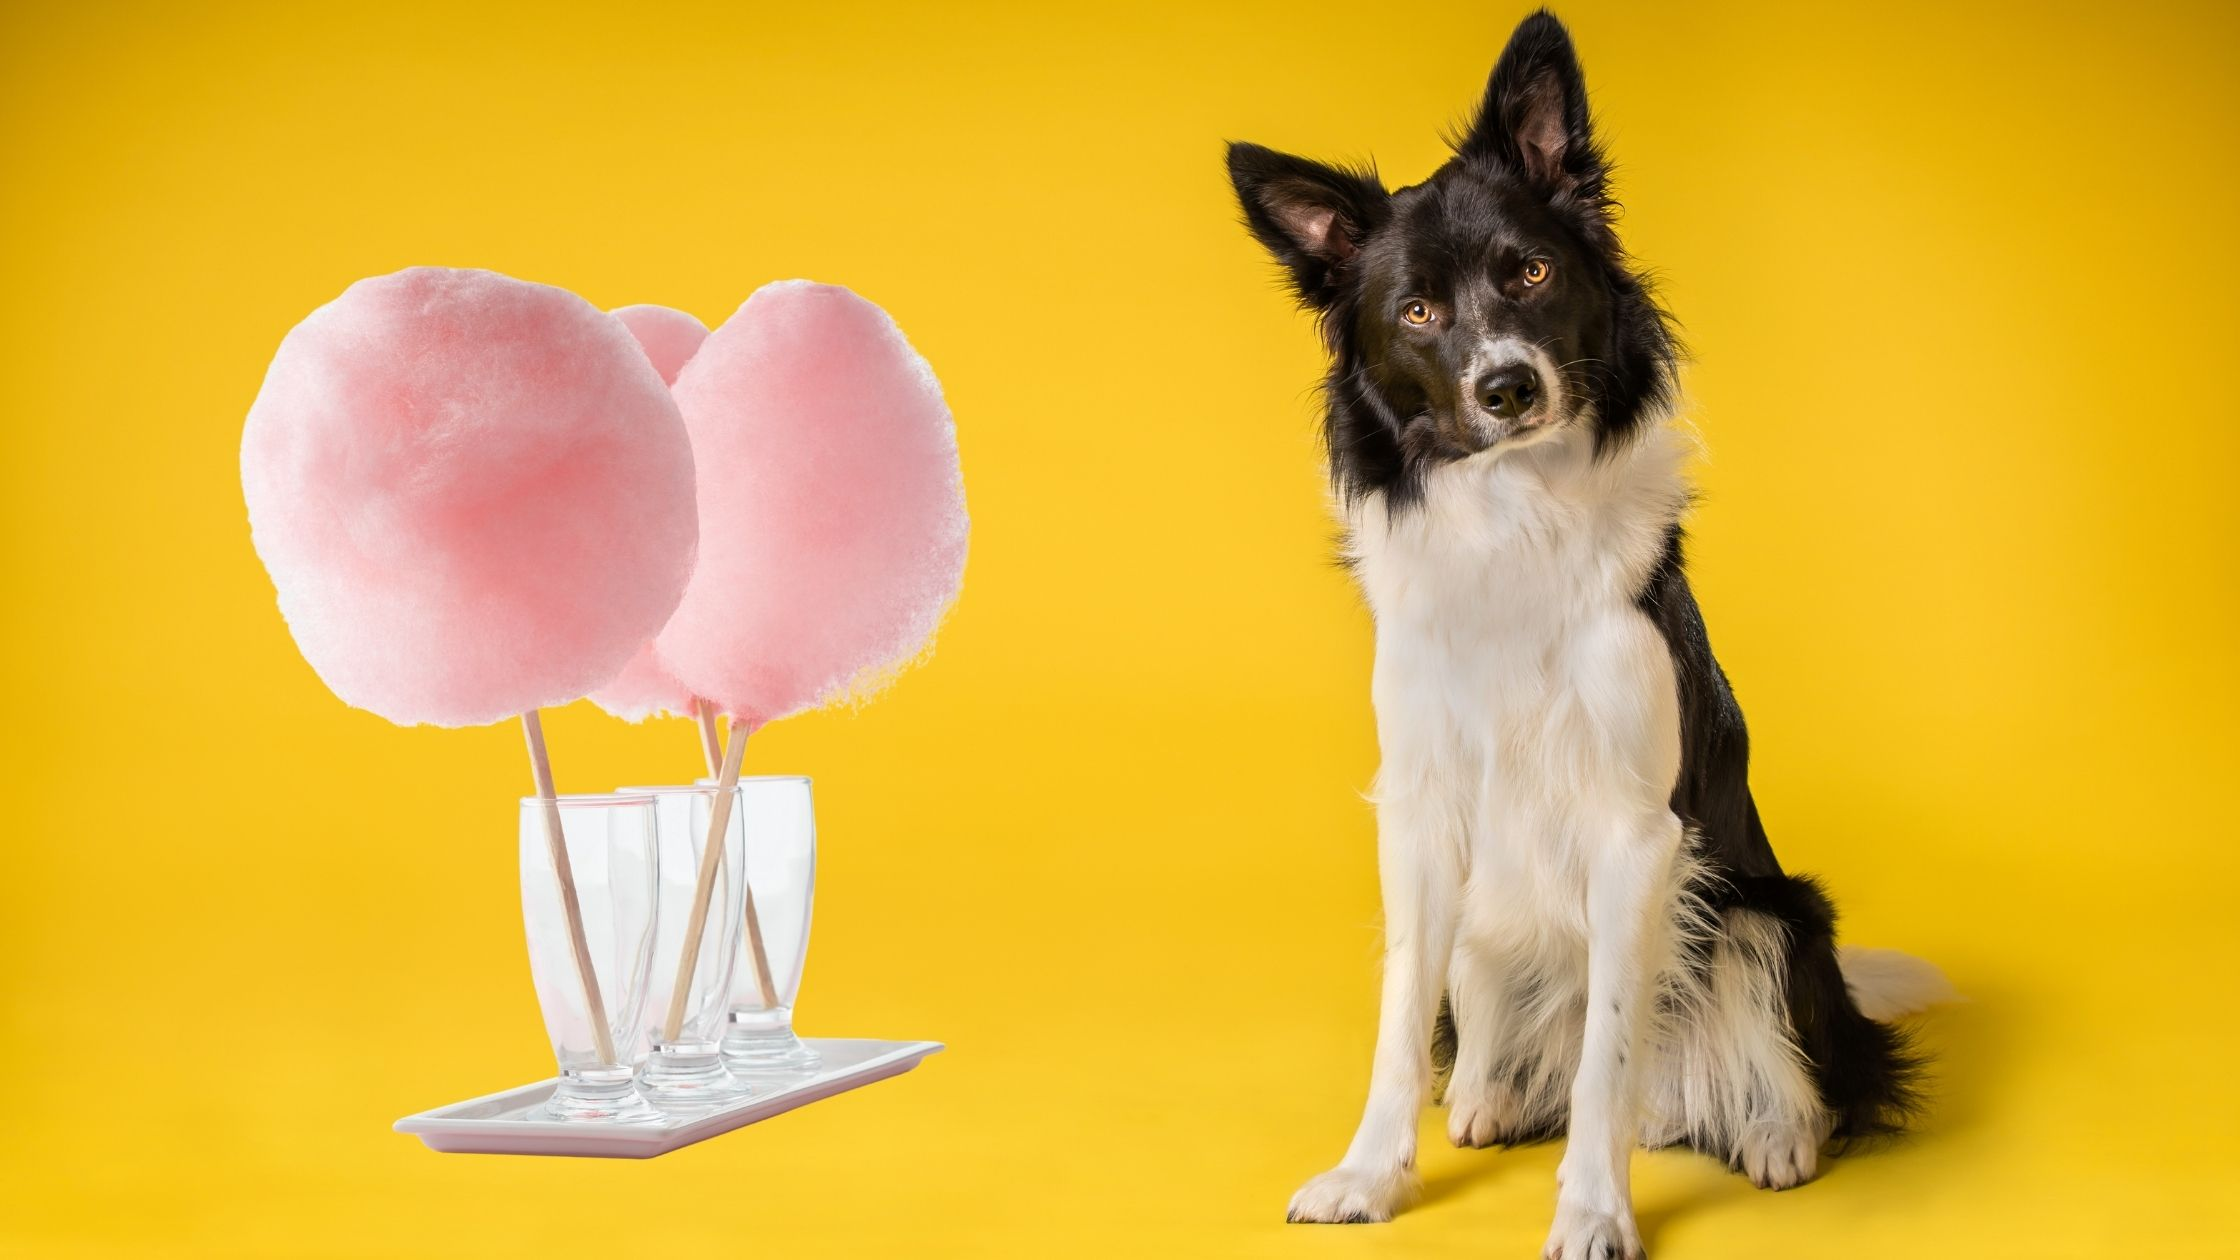 What Should I Do If My Dog Eats Cotton Candy